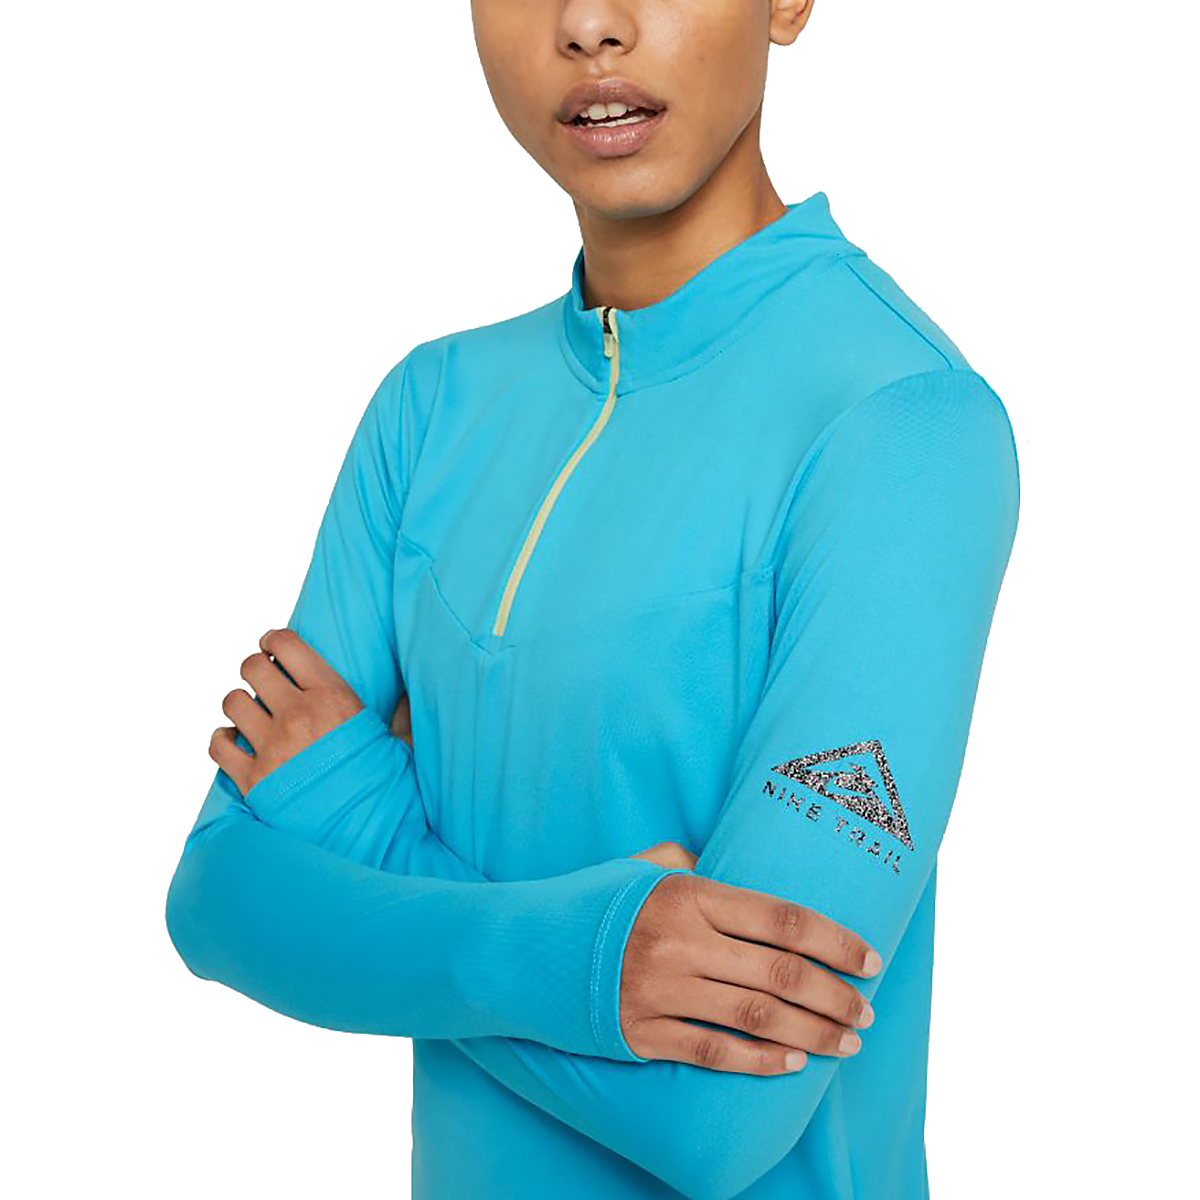 Women's Nike Element Trail Running Midlayer - Color: Chlorine Blue/Reflective Silv - Size: XS, Chlorine Blue/Reflective Silv, large, image 3